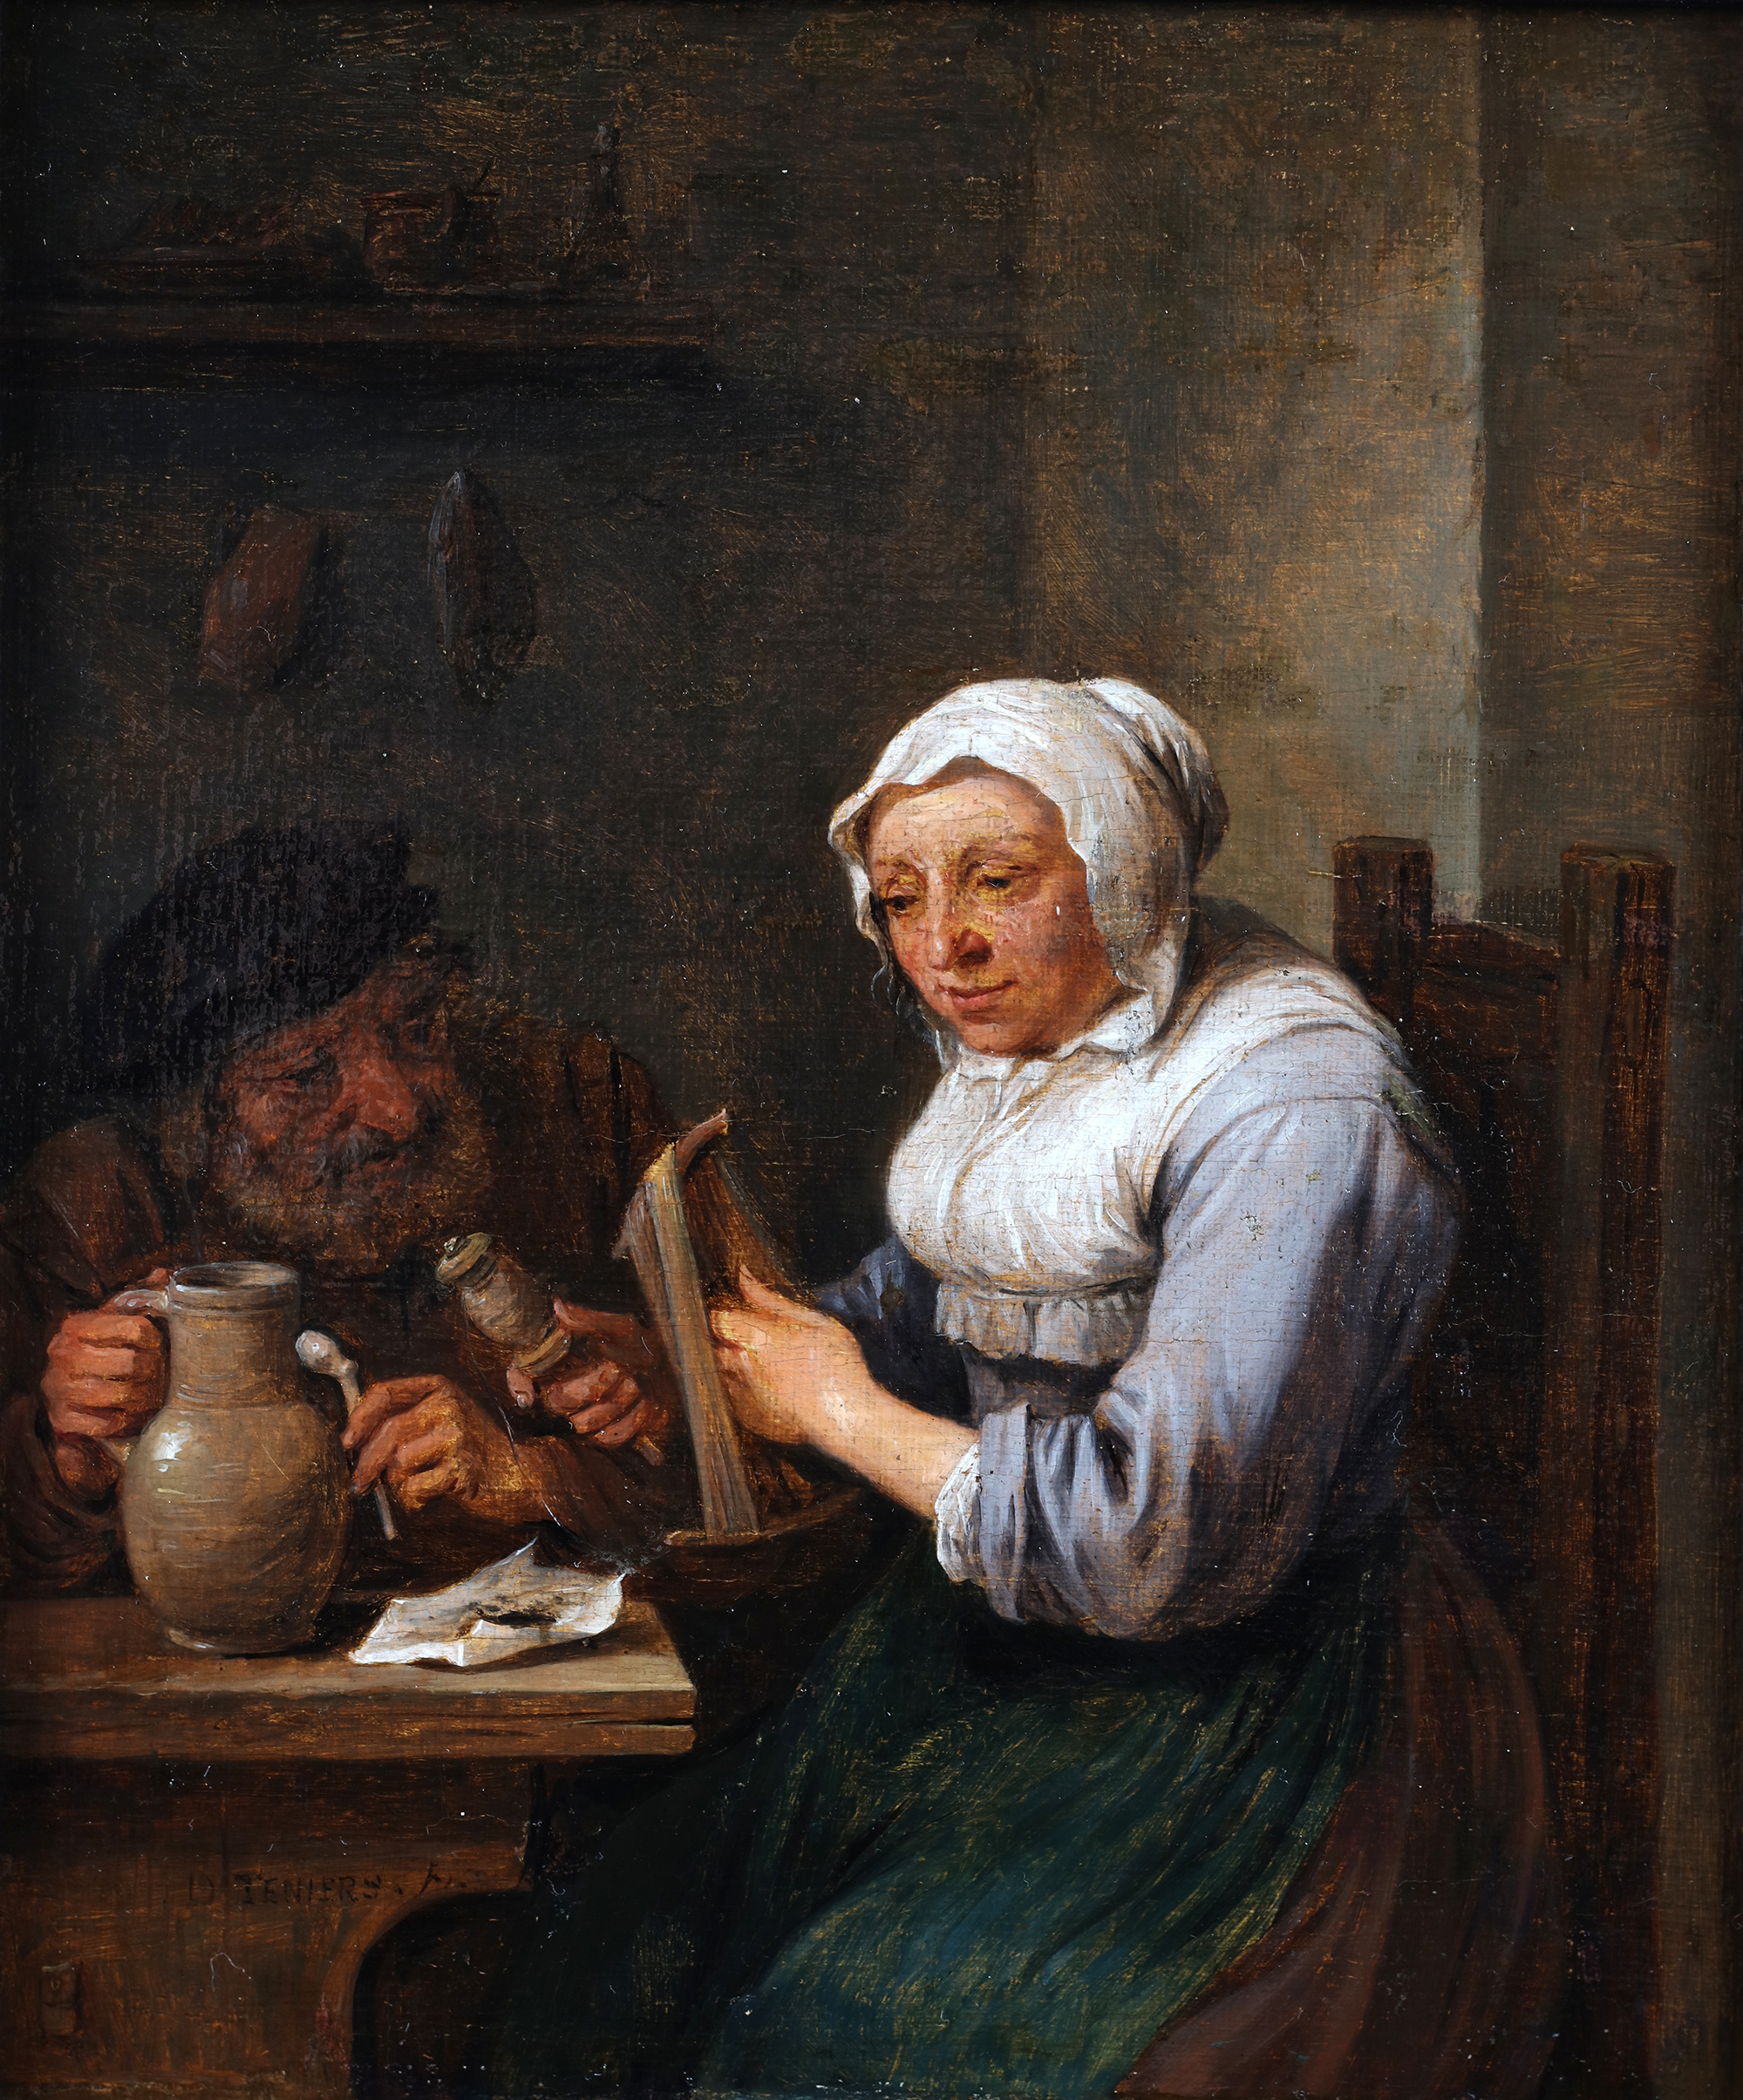 A woman twisting wool and a man at a table holding a pipe and a jug of beer